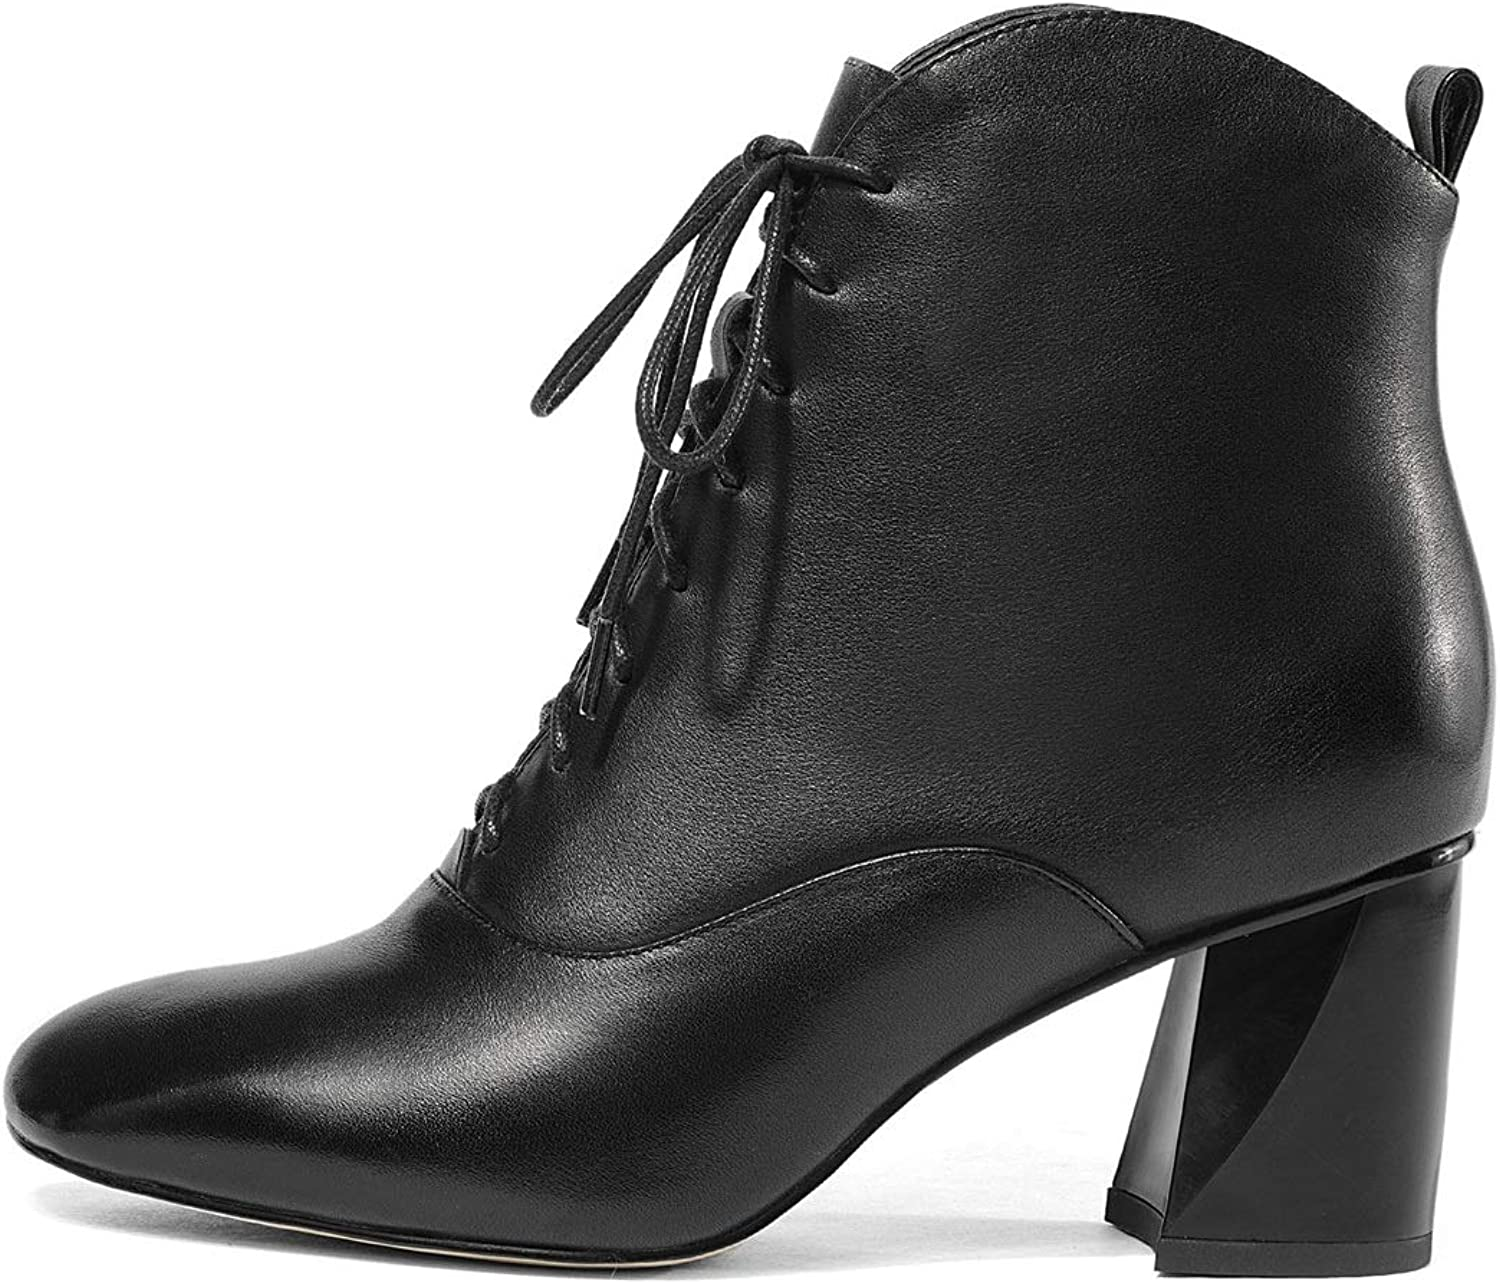 Women's Ankle Boots, Fashion Martin Boots Square Head Rough High Heels Formal Dress shoes Black White (color   Black, Size   36)